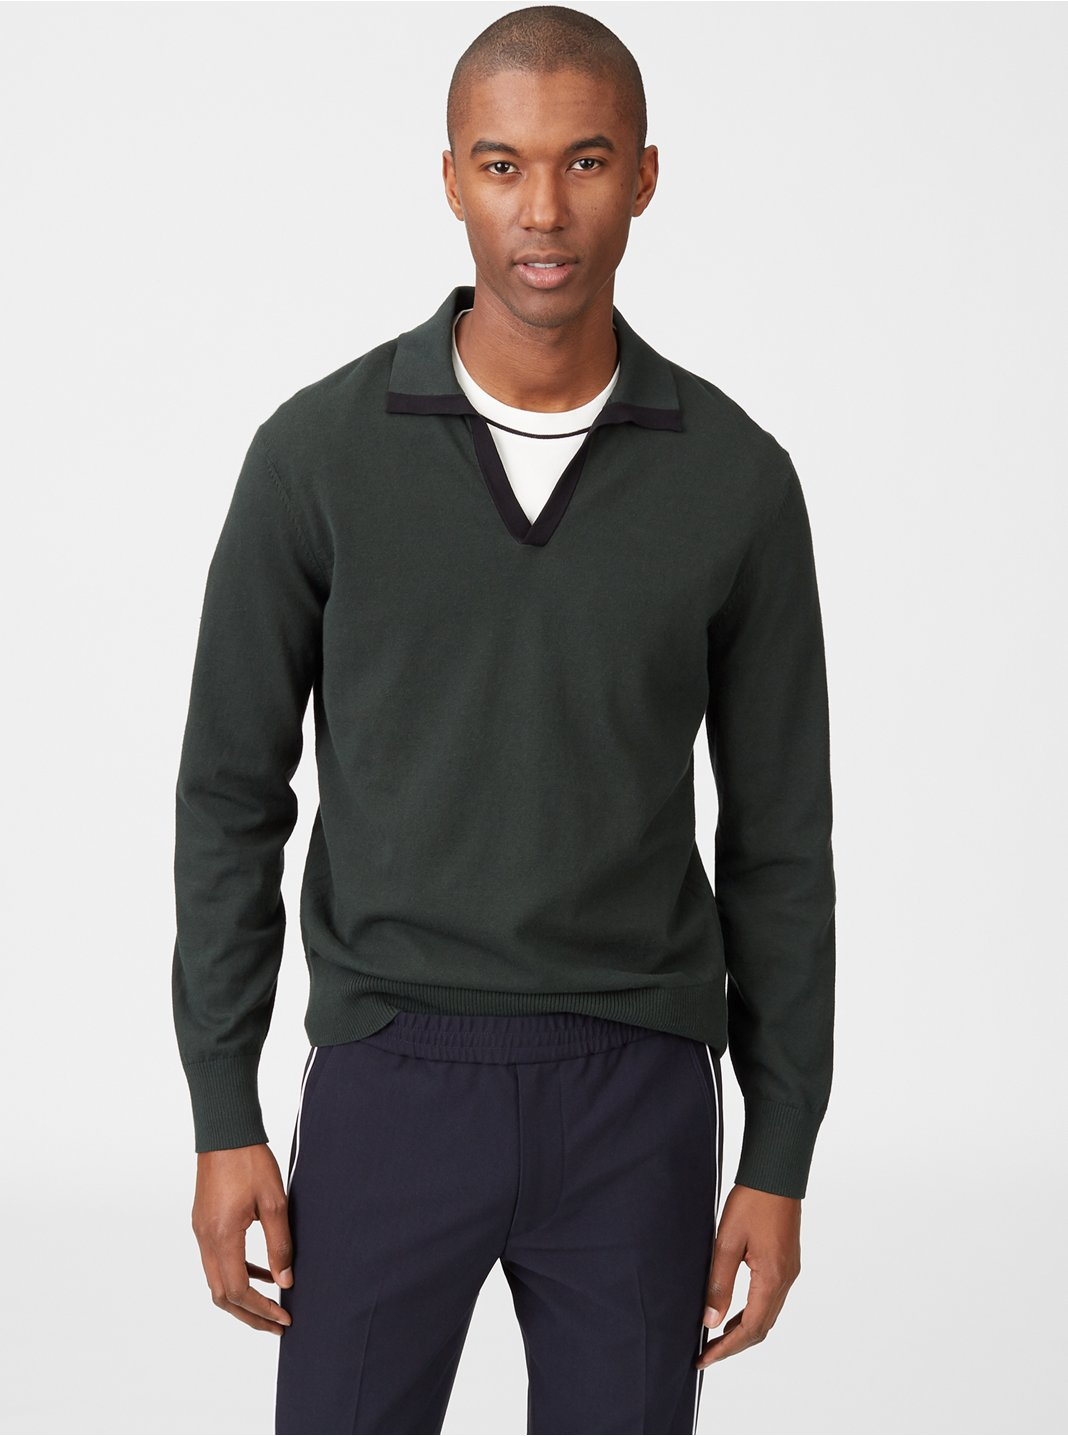 Johnny Collar Sweater